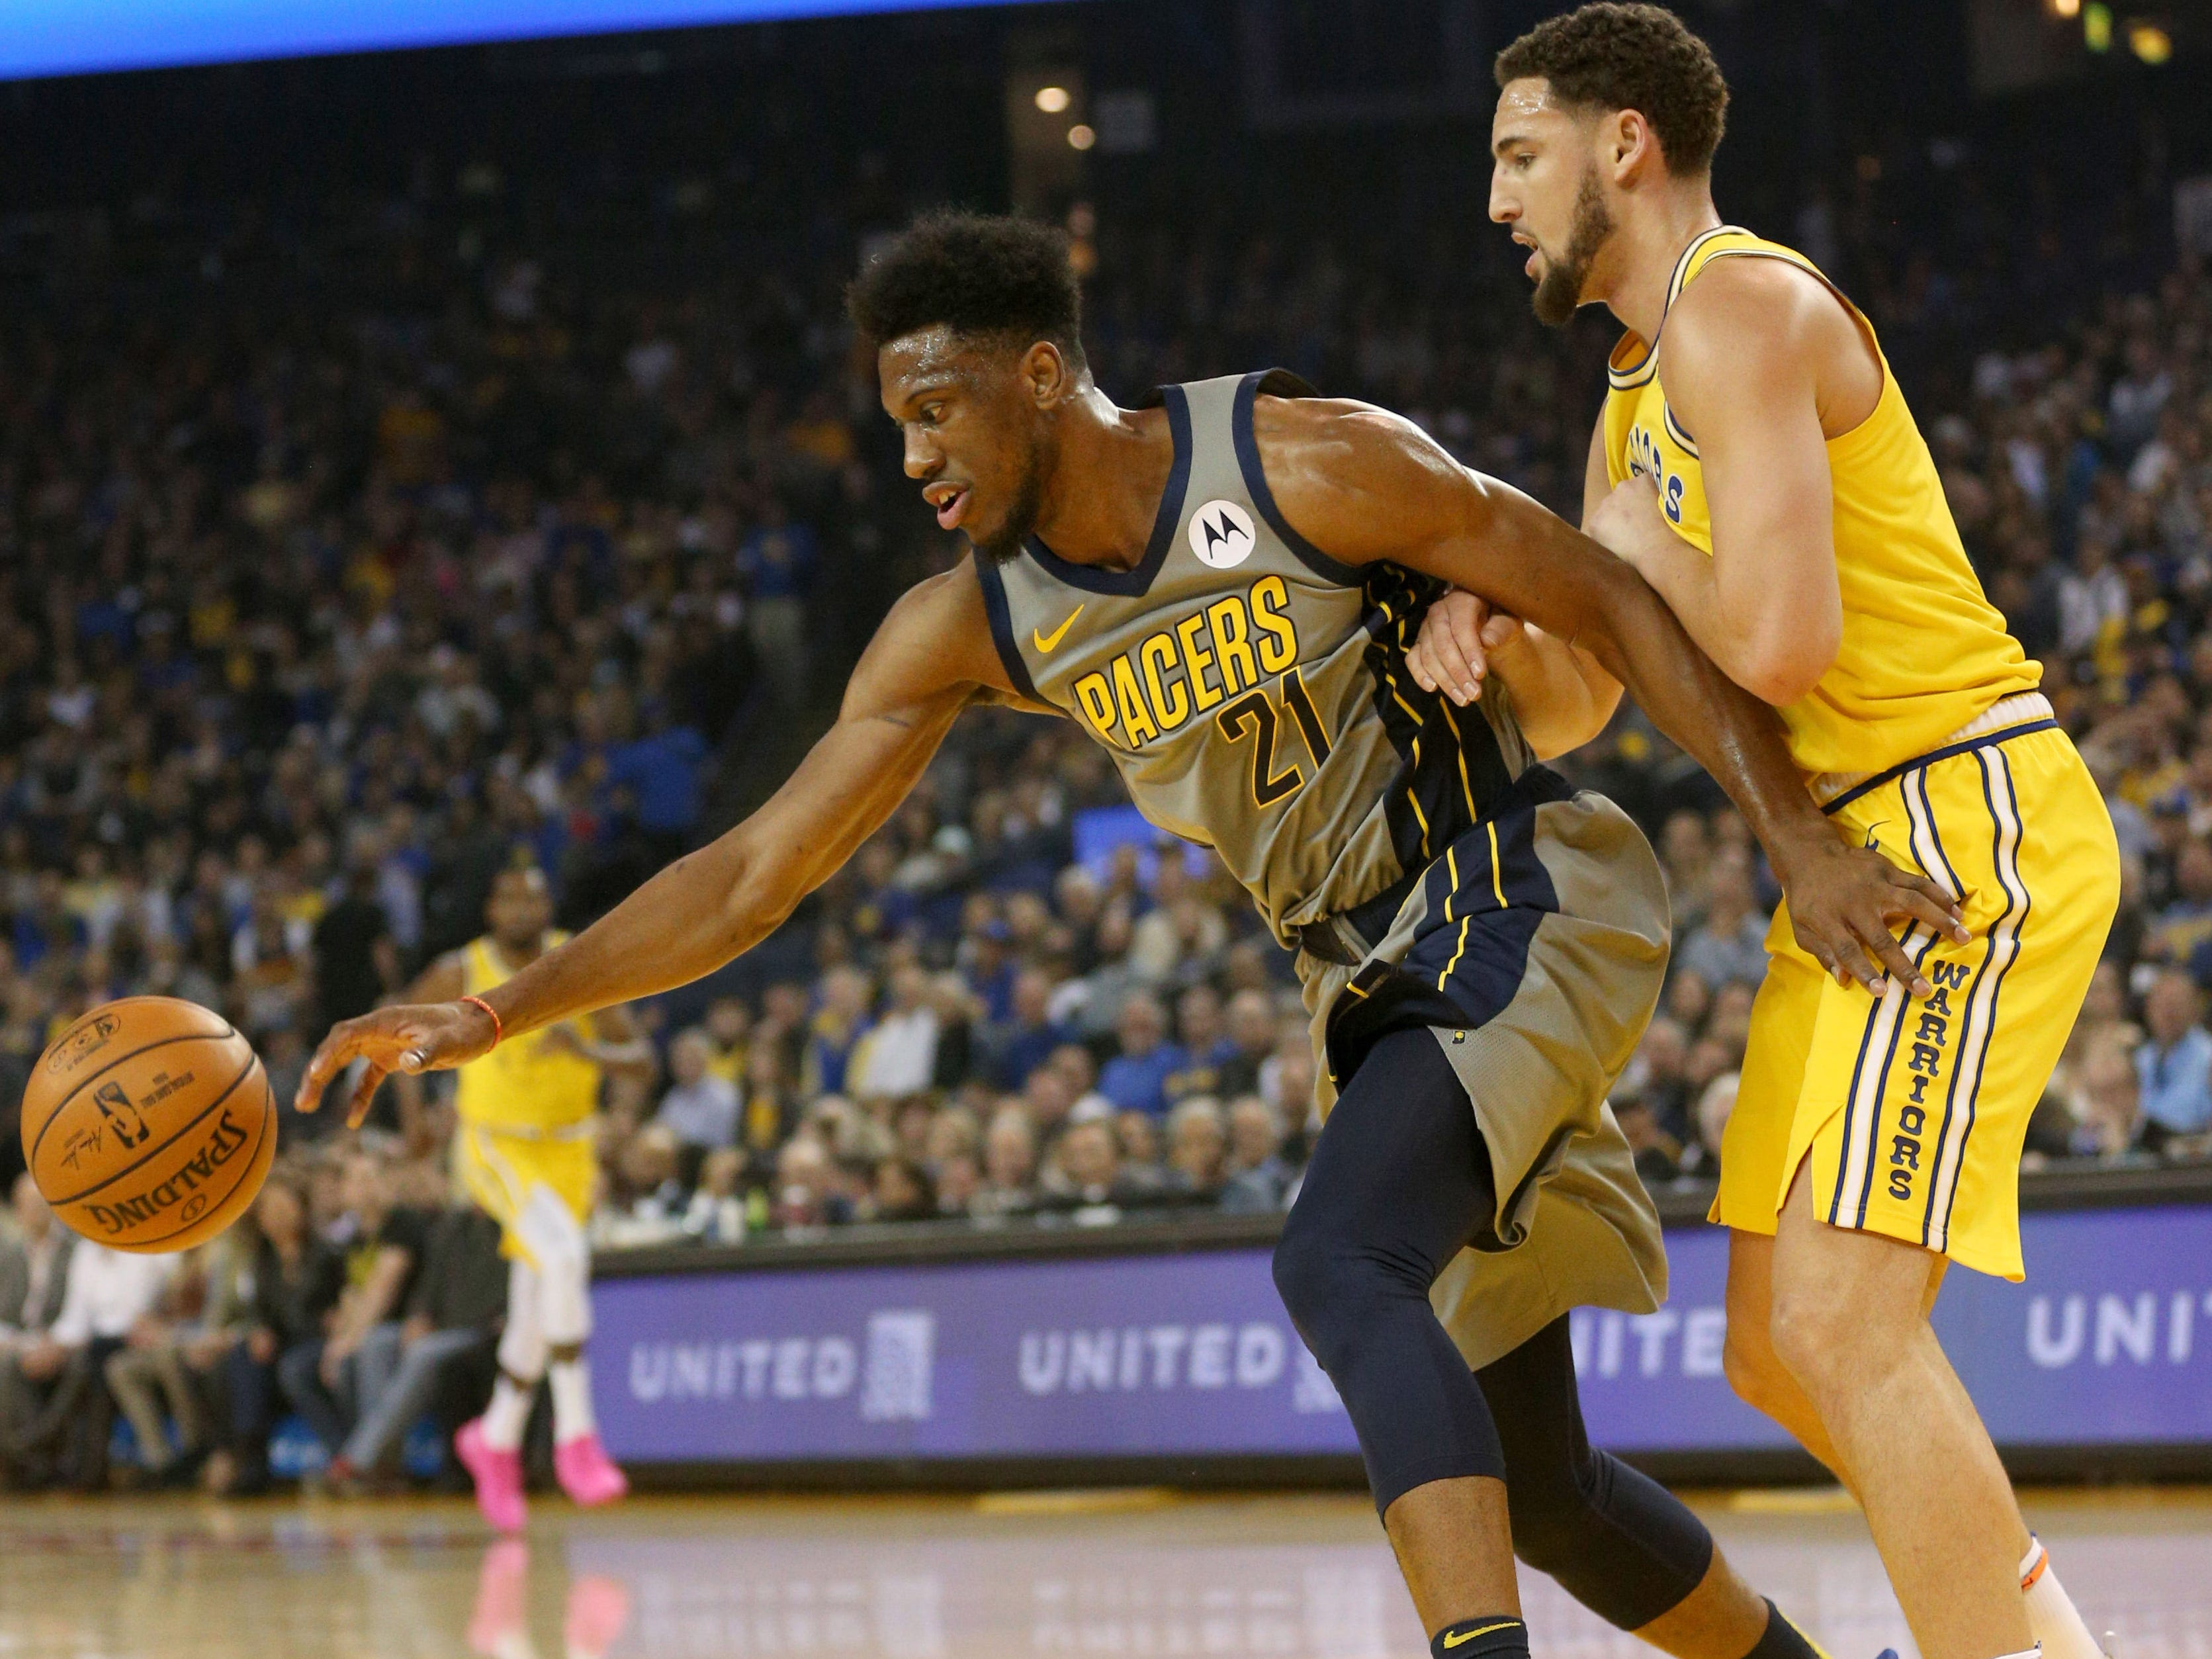 Mar 21, 2019; Oakland, CA, USA; Indiana Pacers forward Thaddeus Young (21) attempts to gain control of the ball next to Golden State Warriors guard Klay Thompson (11) in the first quarter at Oracle Arena.